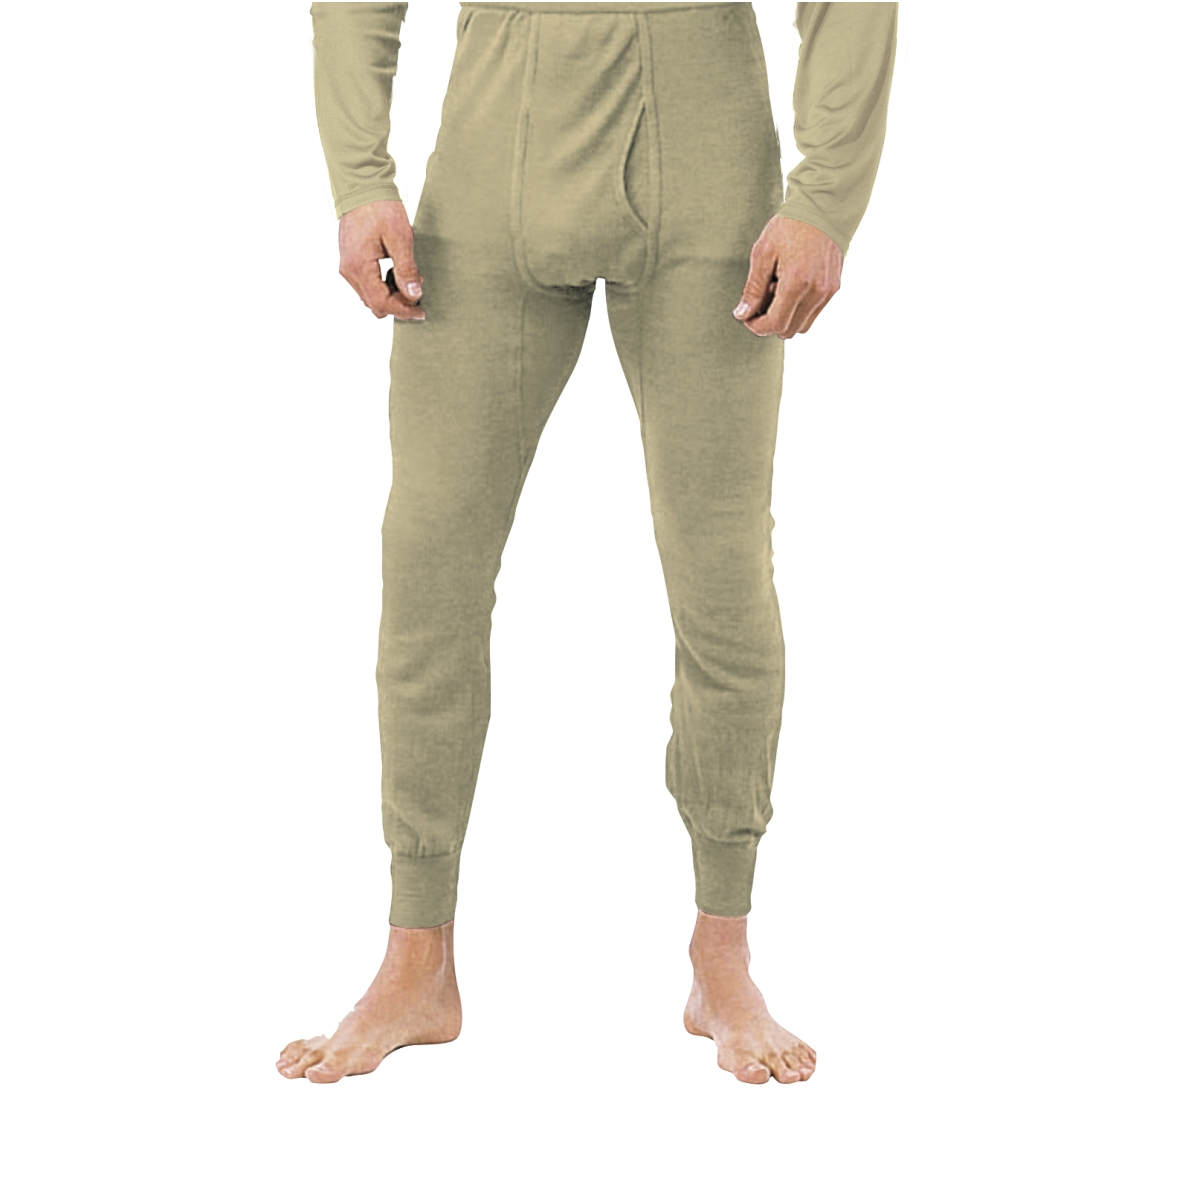 Silk Weight Thermal Underwear Pants, Sand Mens by Rothco